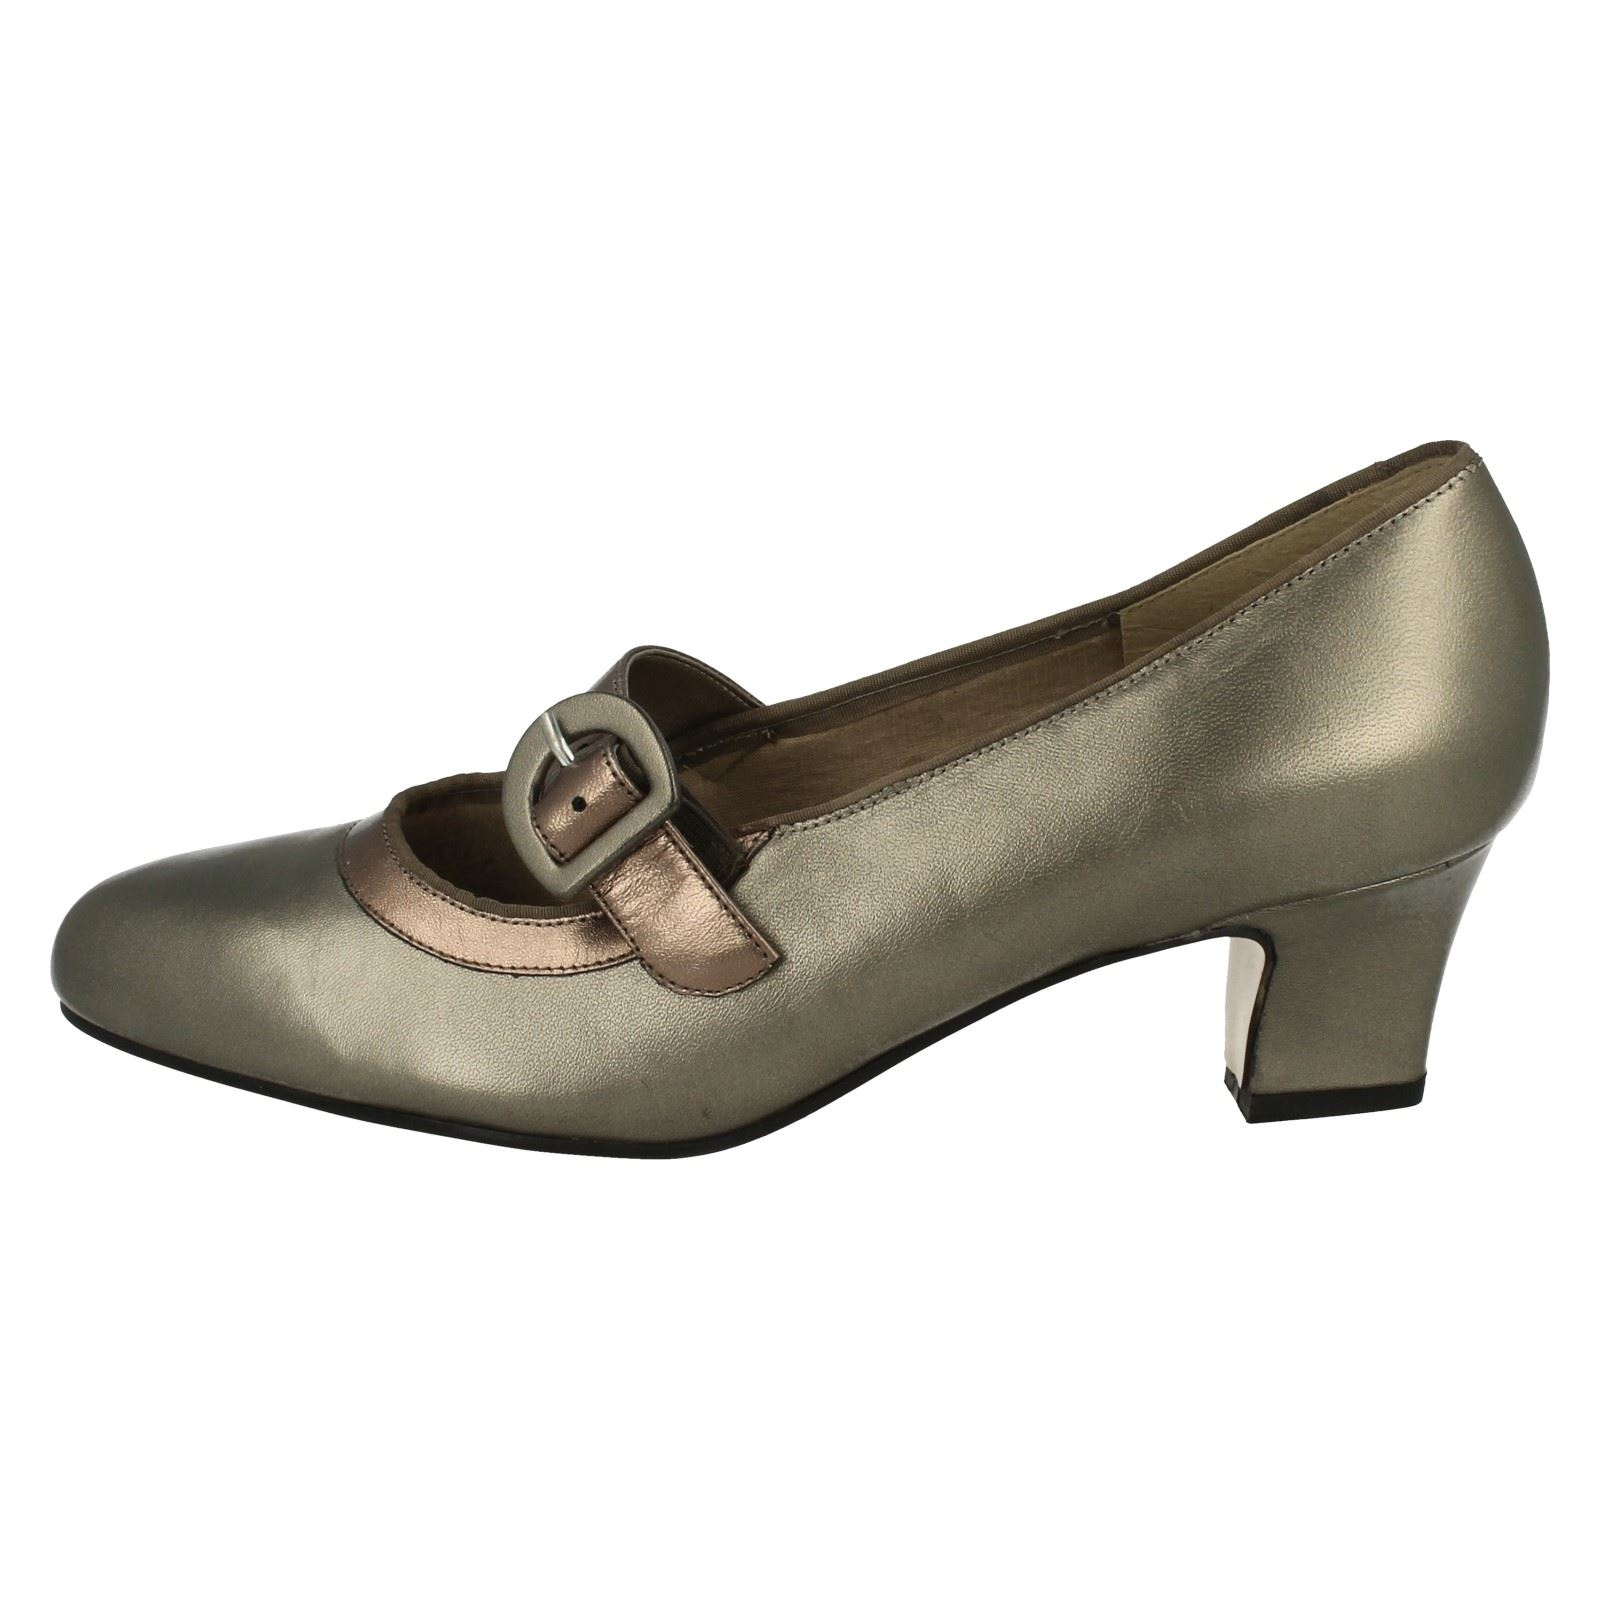 Ladies Equity Equity Equity Wide Fitting Court shoes Maxine 533943